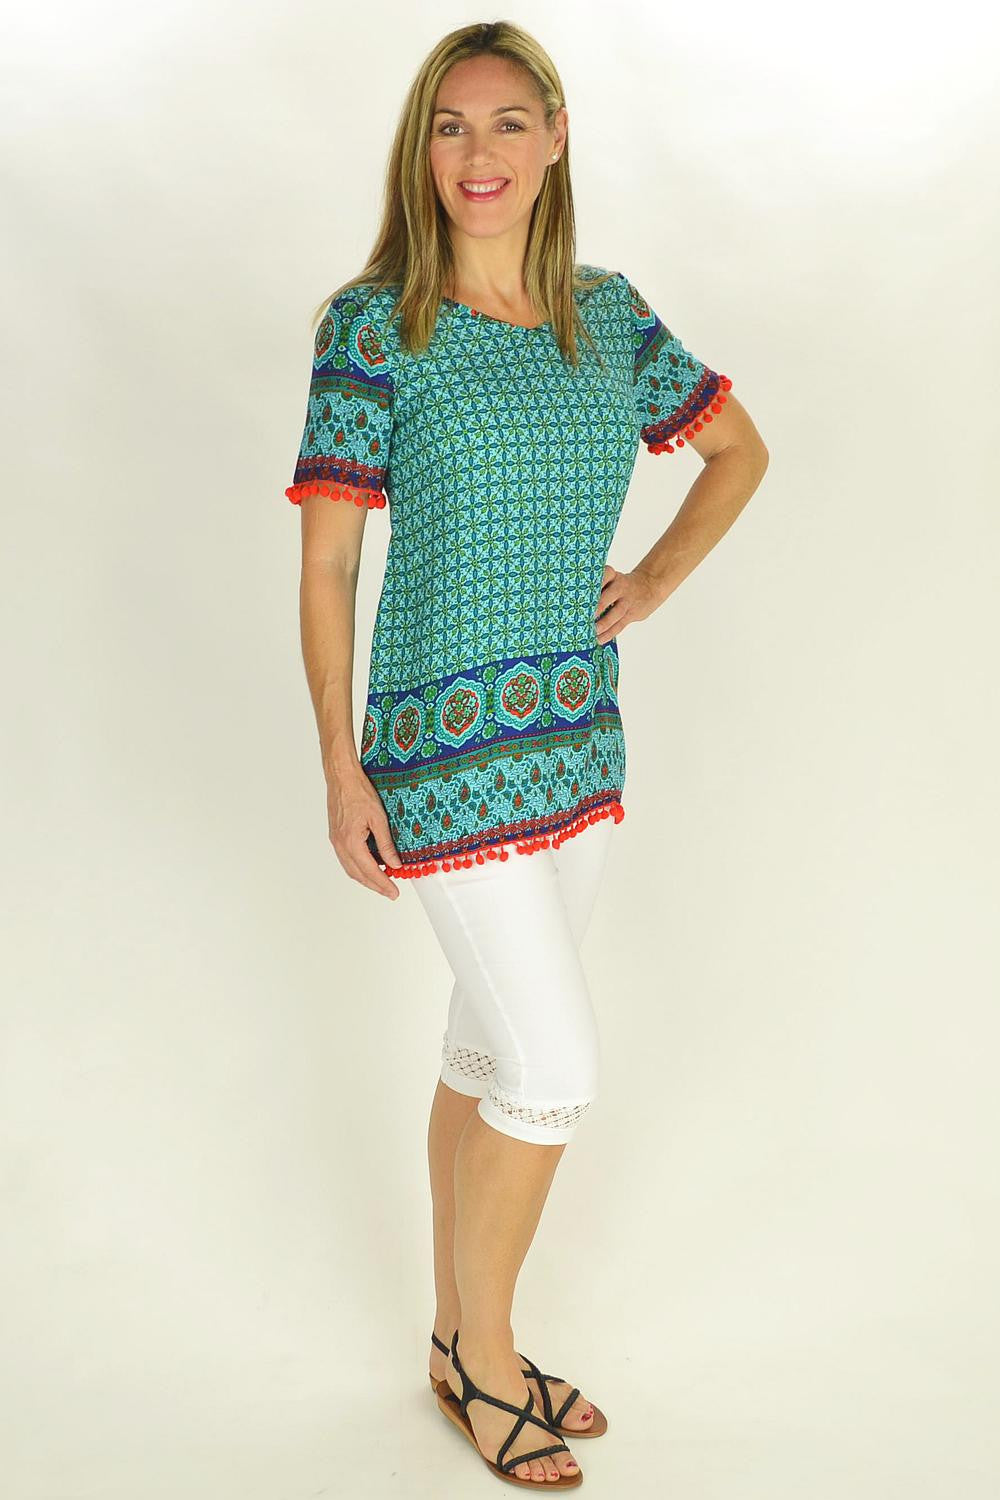 Moroccan Tunic - at I Love Tunics @ www.ilovetunics.com = Number One! Tunics Destination